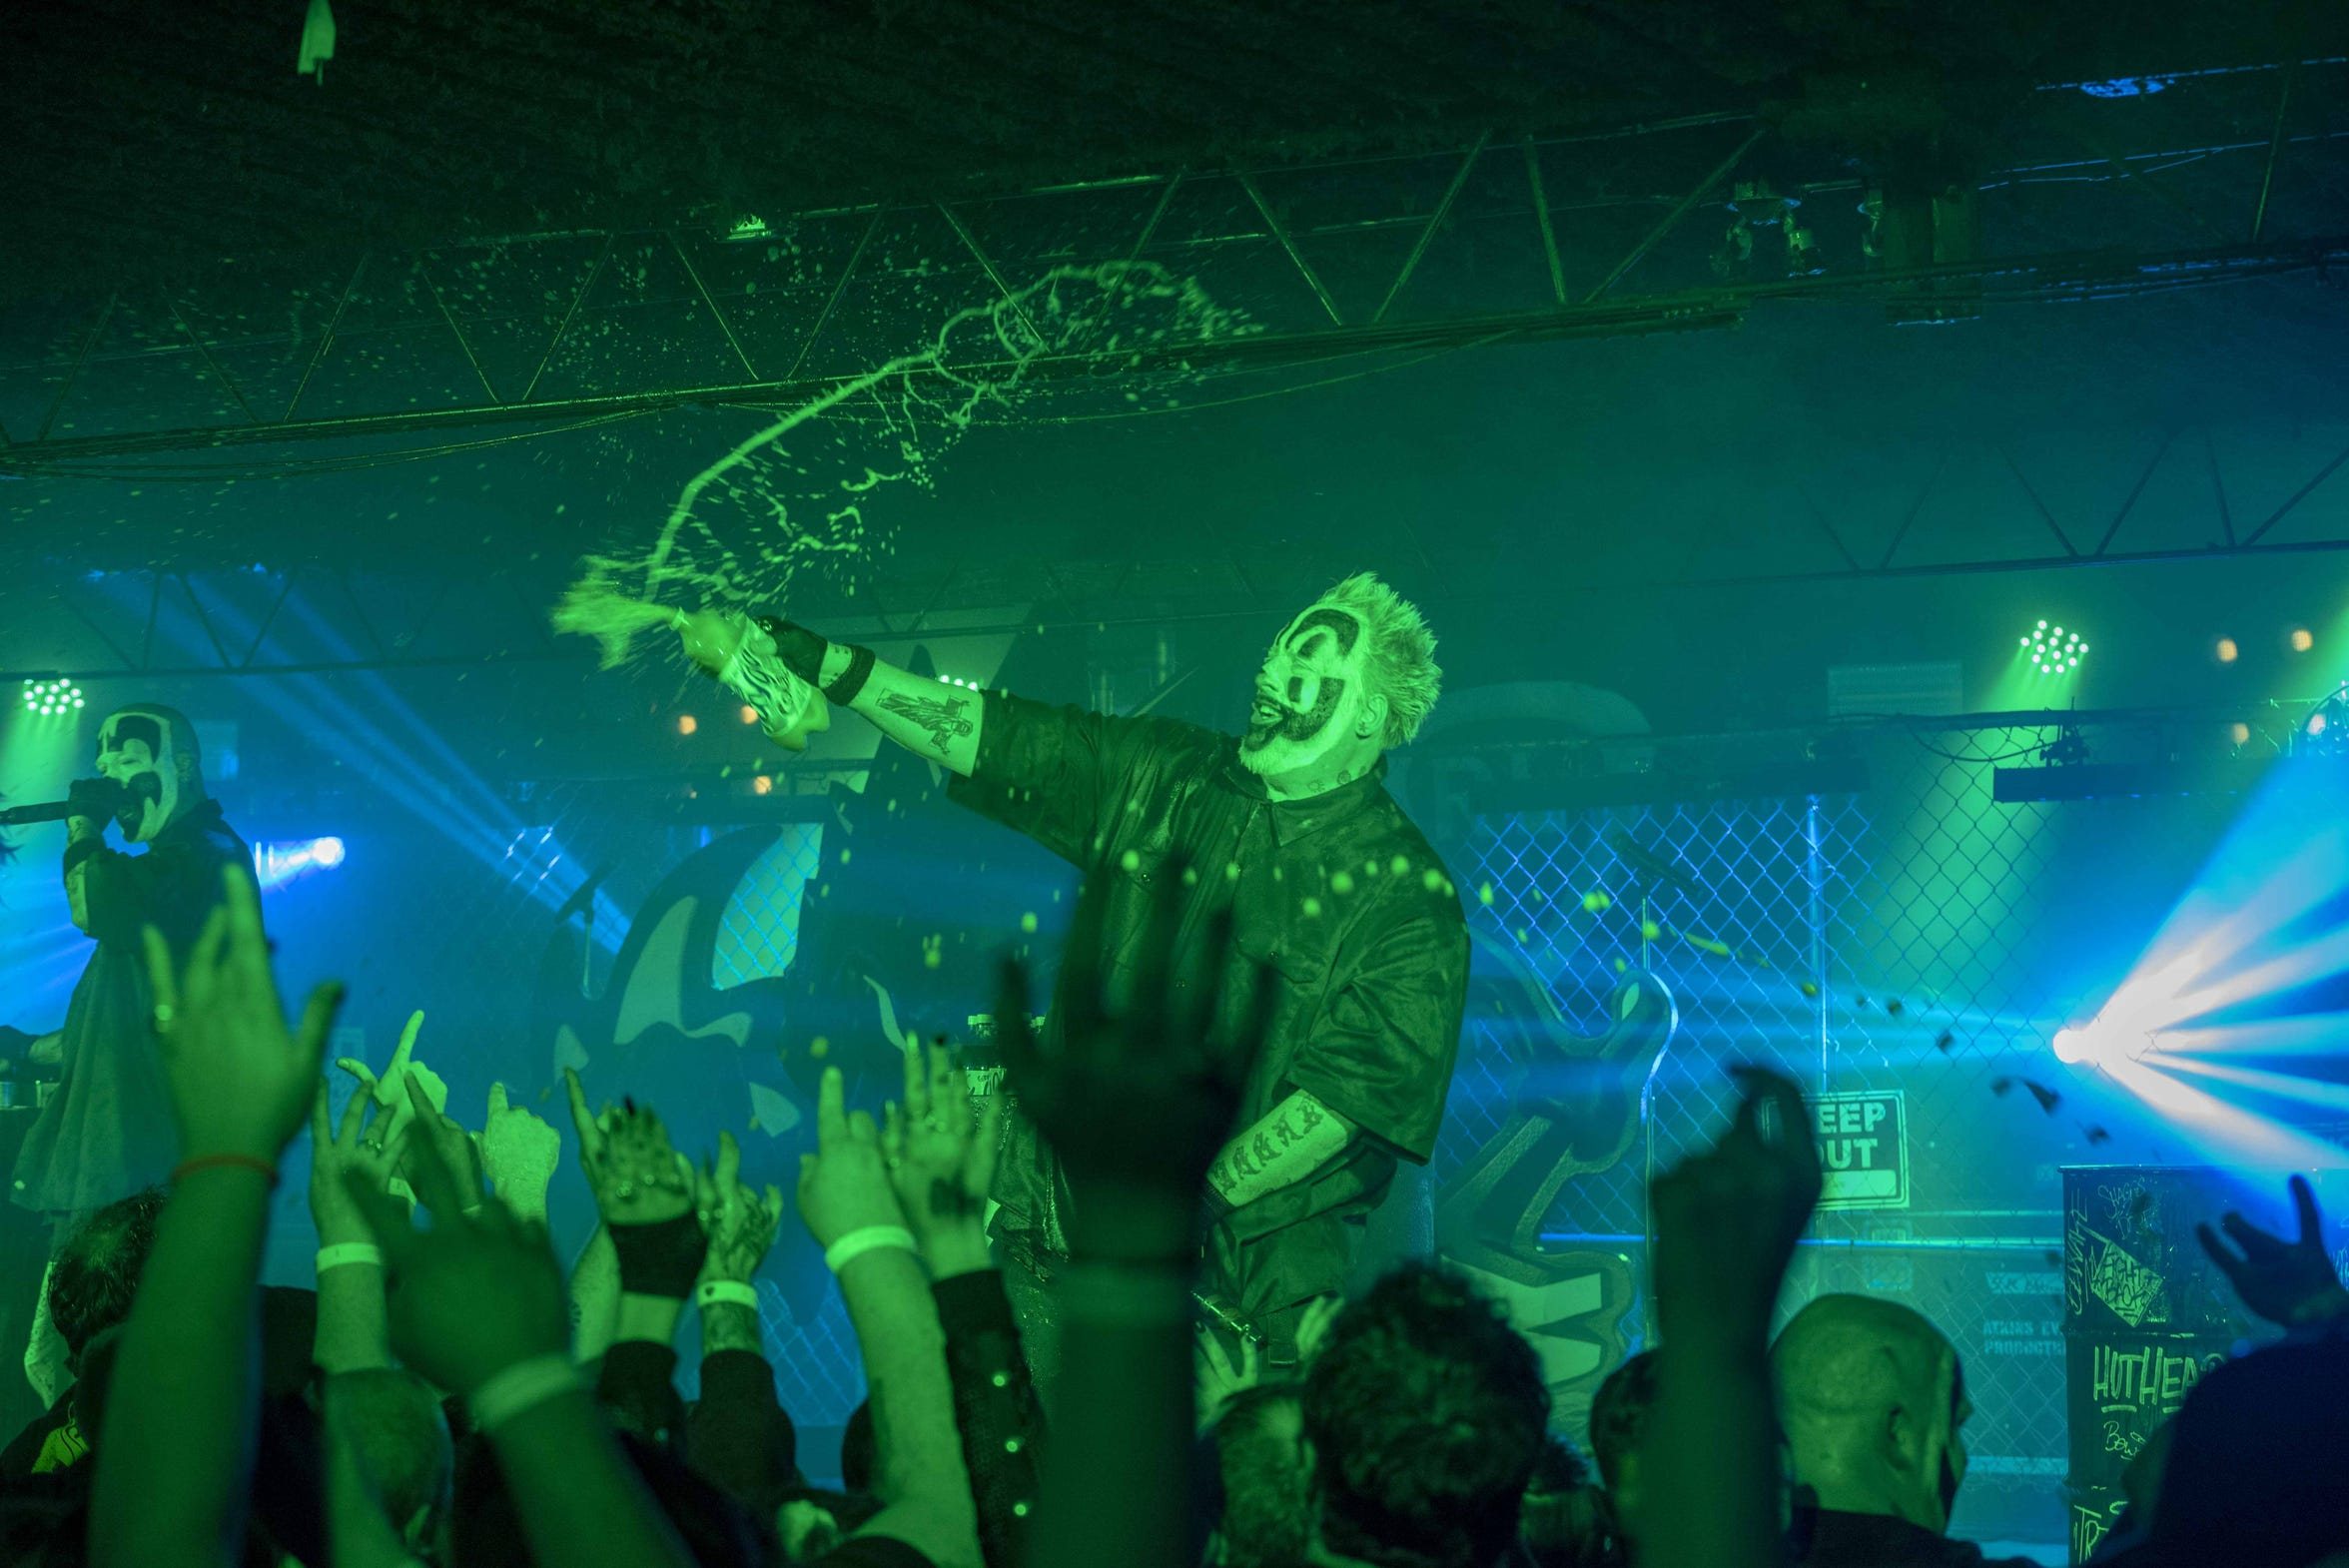 Insane Clown Posse, also refered to as ICP ia an American hip hop  duo composed of Violent J and Shaggy 2Dope.  The band were the headliners at Riverfront Live's Fury Fest. Faygo soda gets sprayed into the audience.